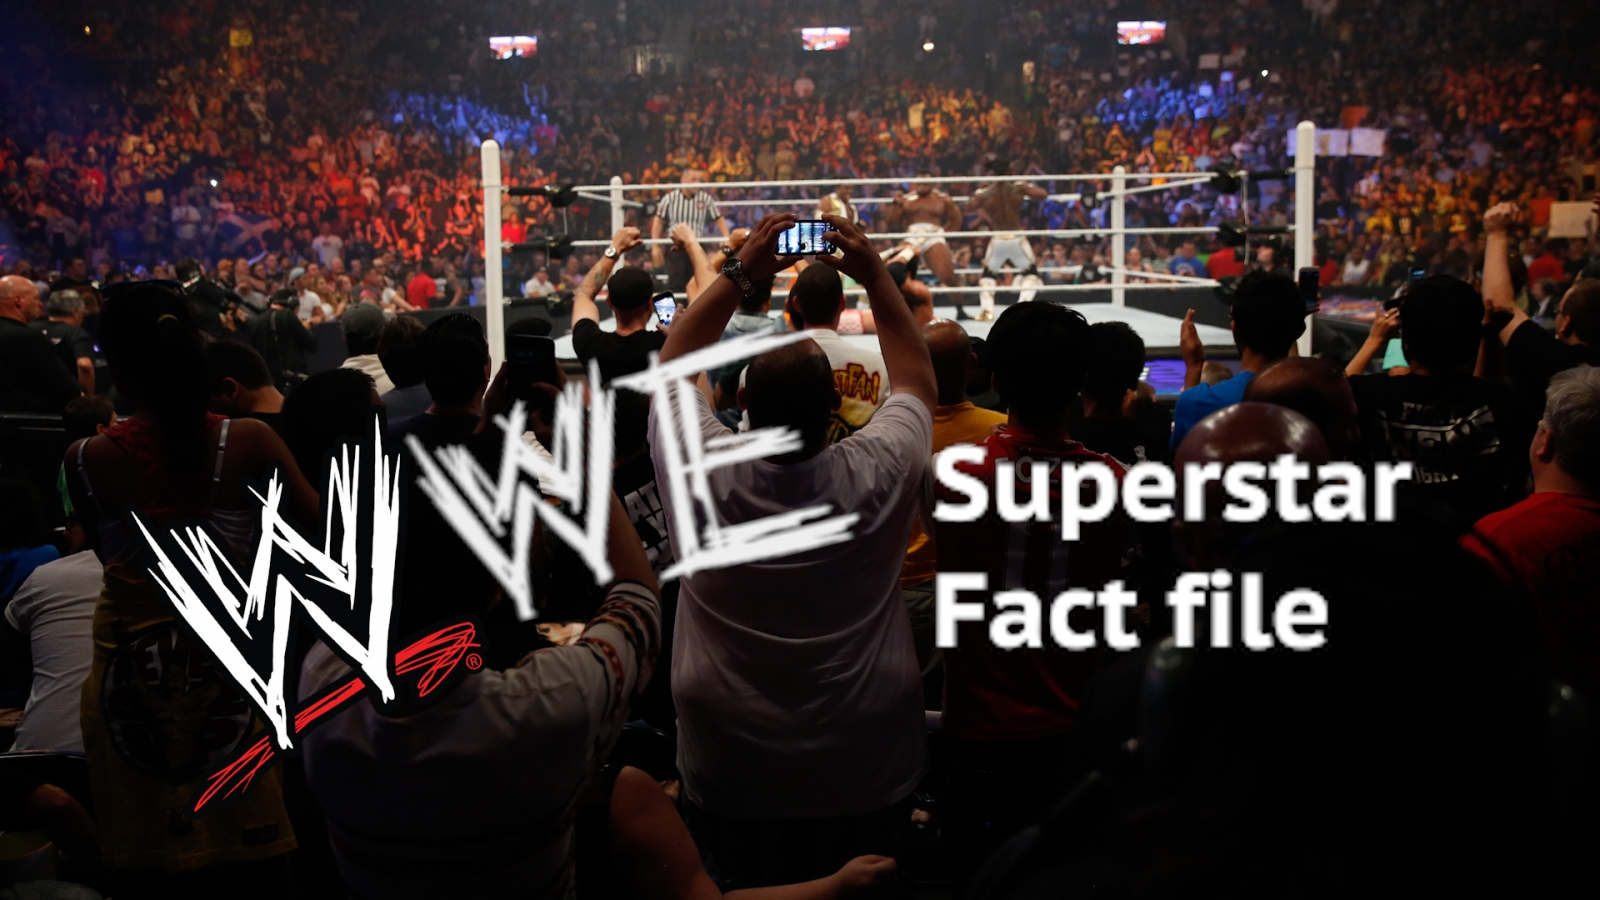 WWE superstar fact file